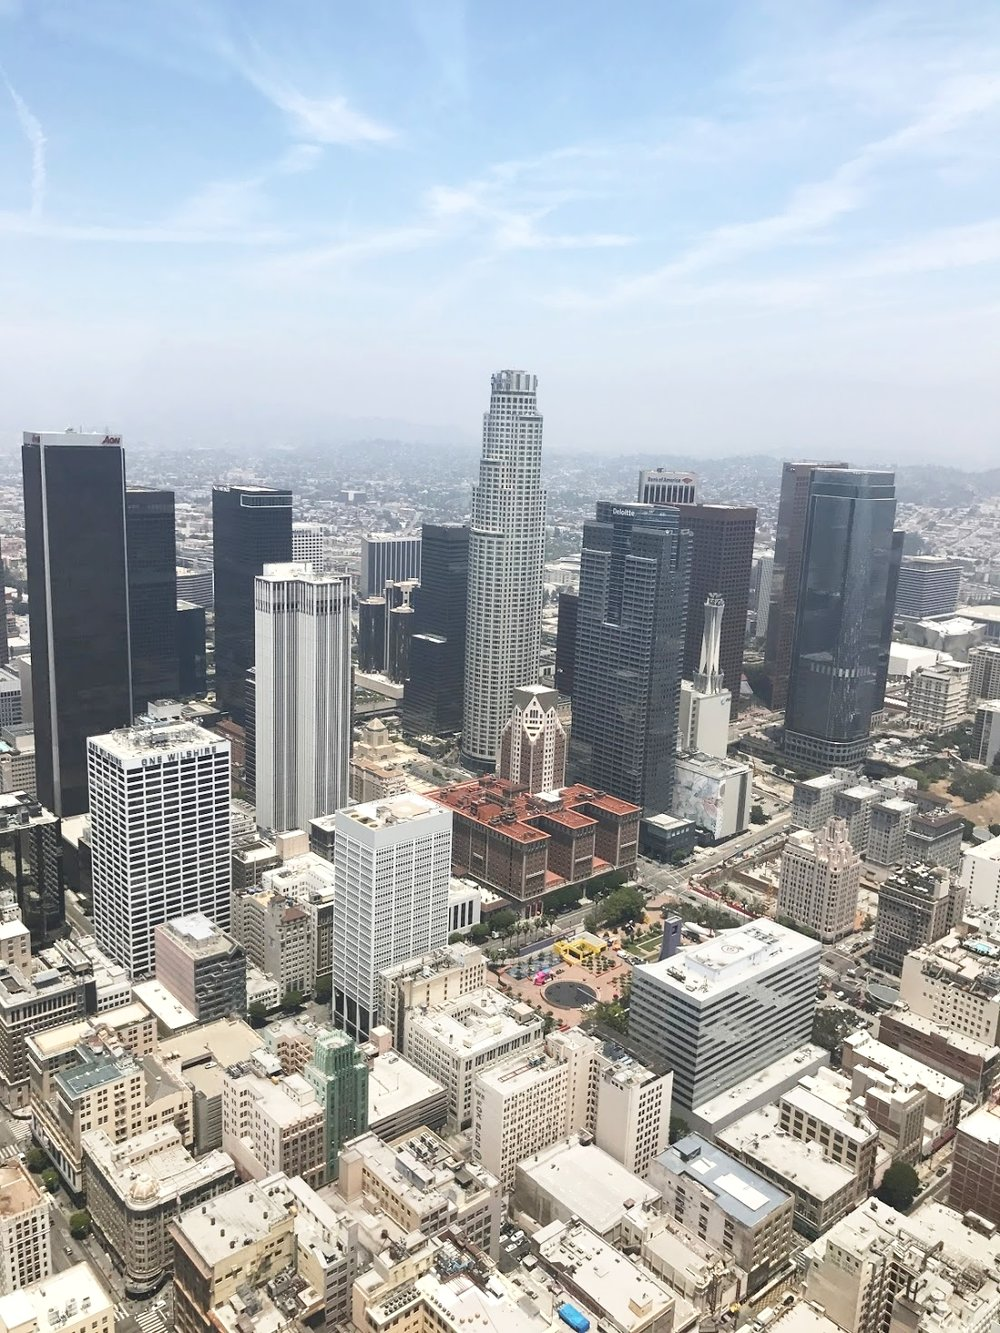 US Bank Tower | West Coast's tallest building at 1018 feet high